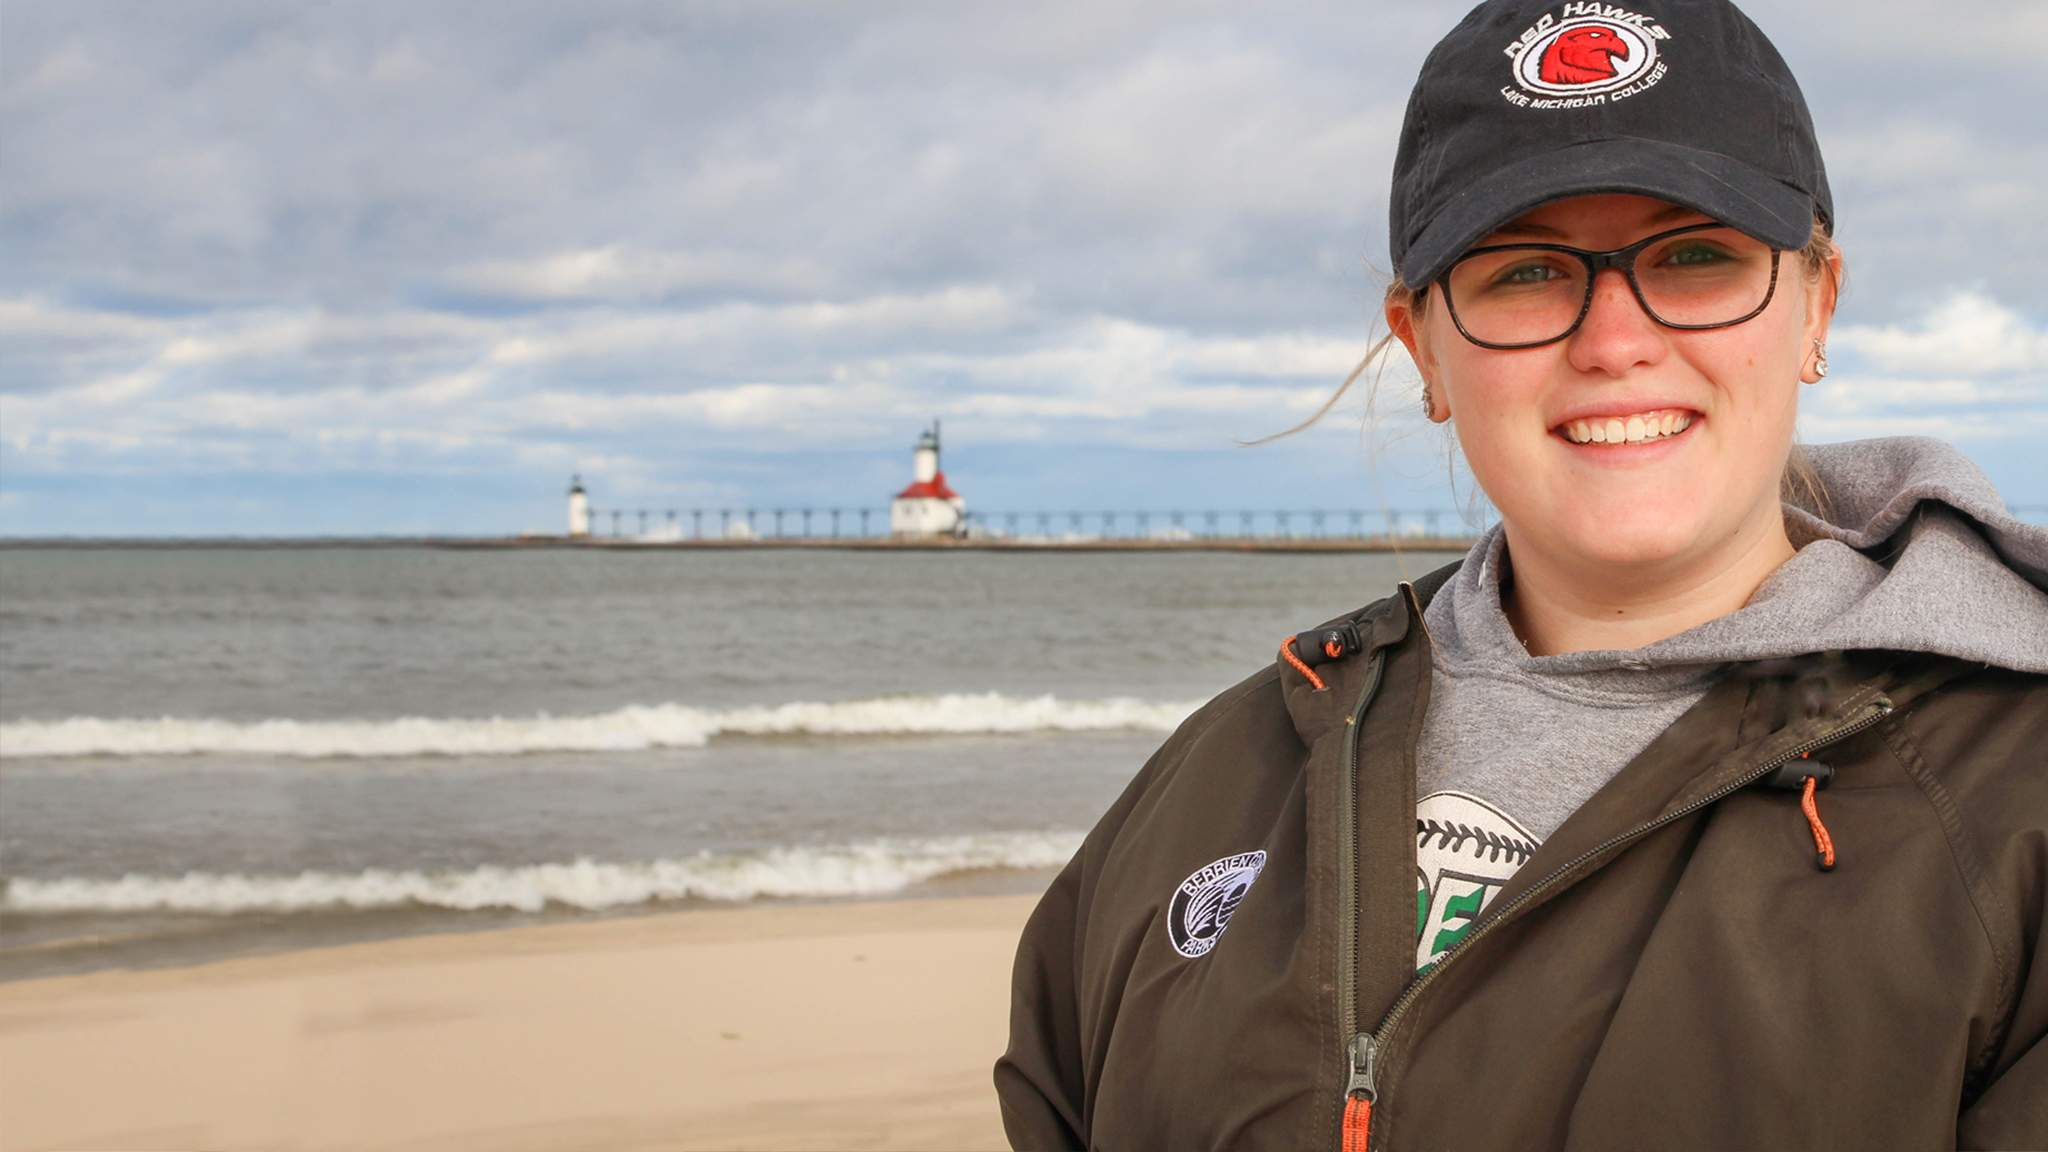 Student at Silver Beach in Saint Joseph Michigan